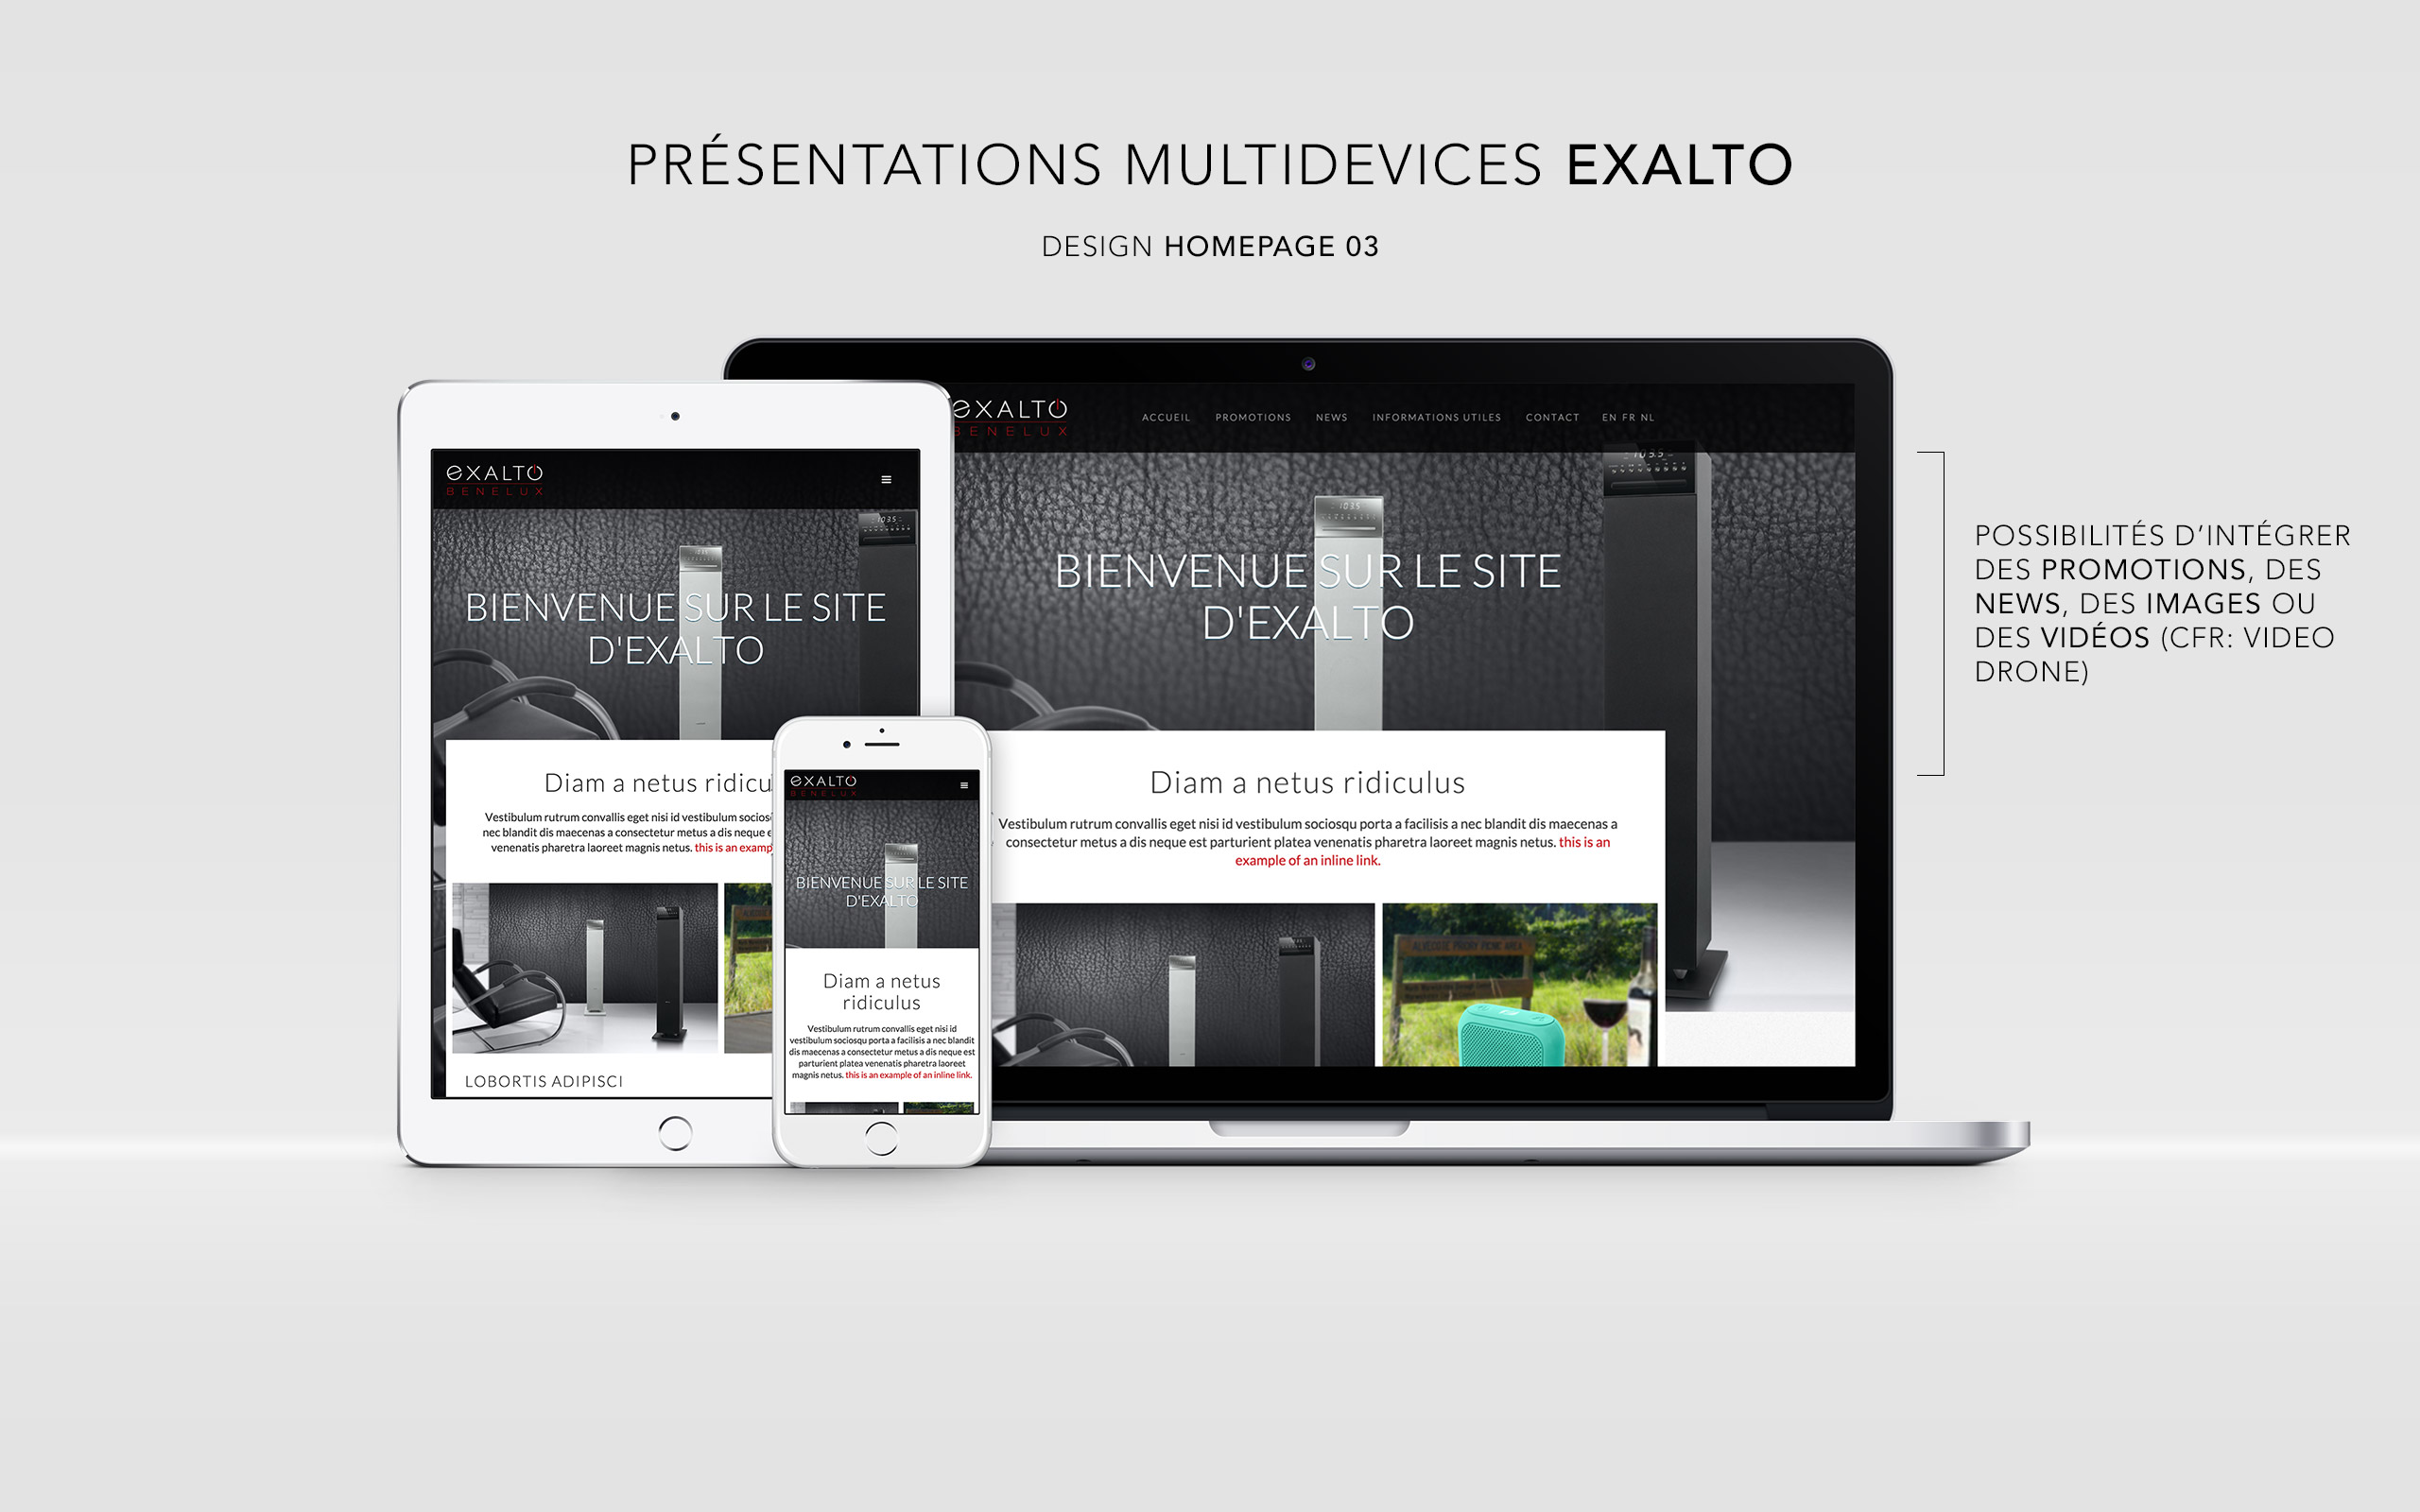 Exalto website